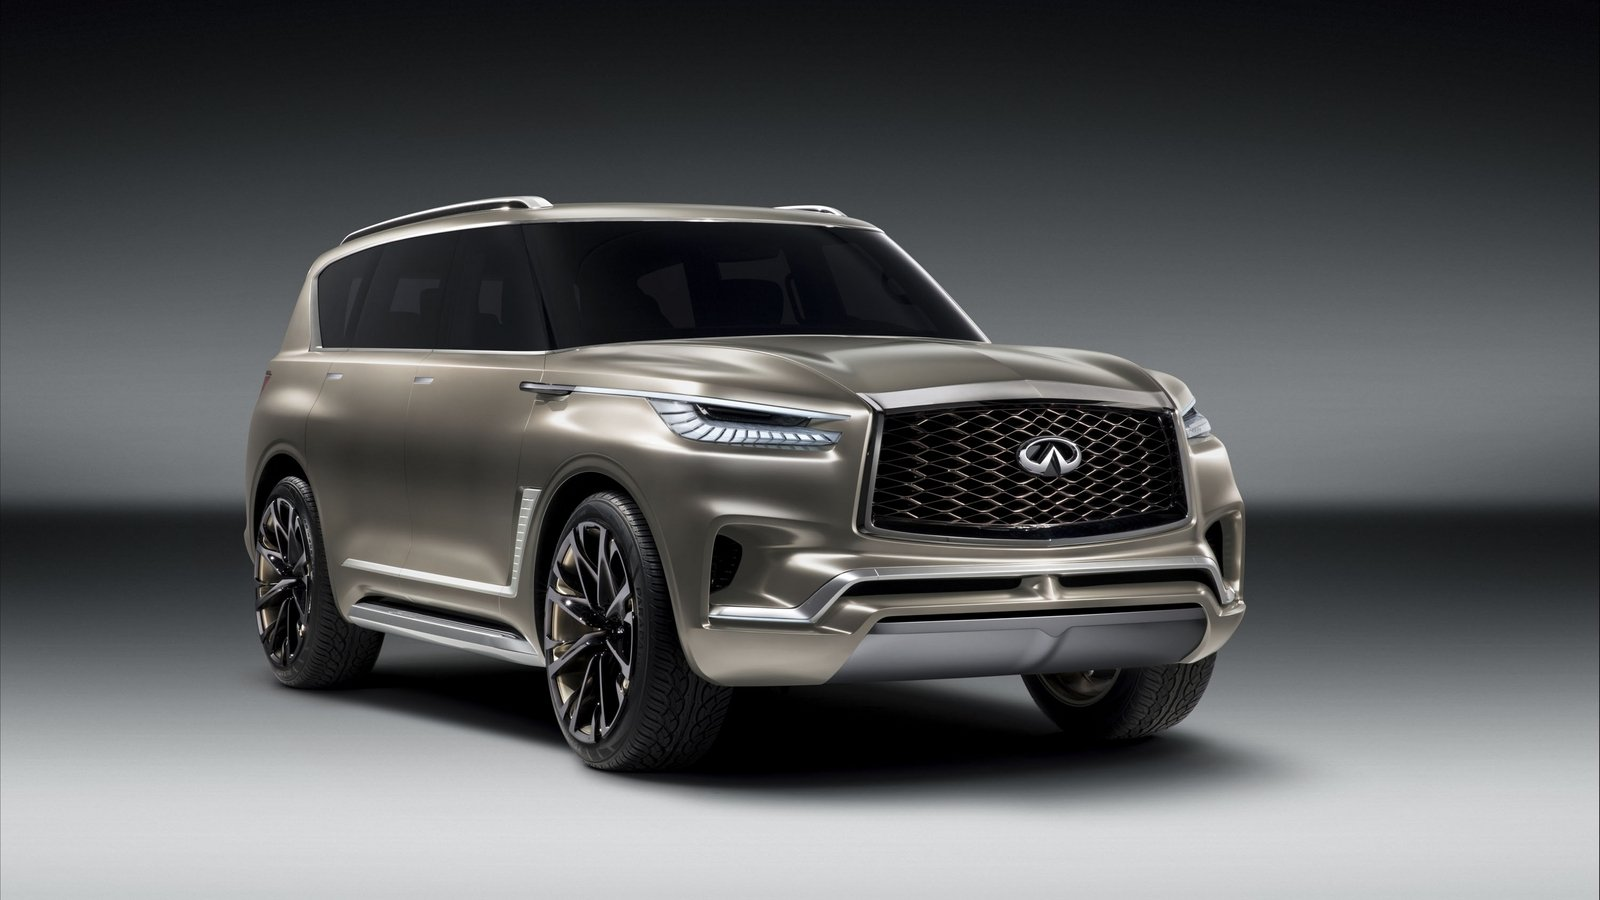 2018 infiniti supercar. unique supercar 2018 infiniti qx80 monograph for infiniti supercar u